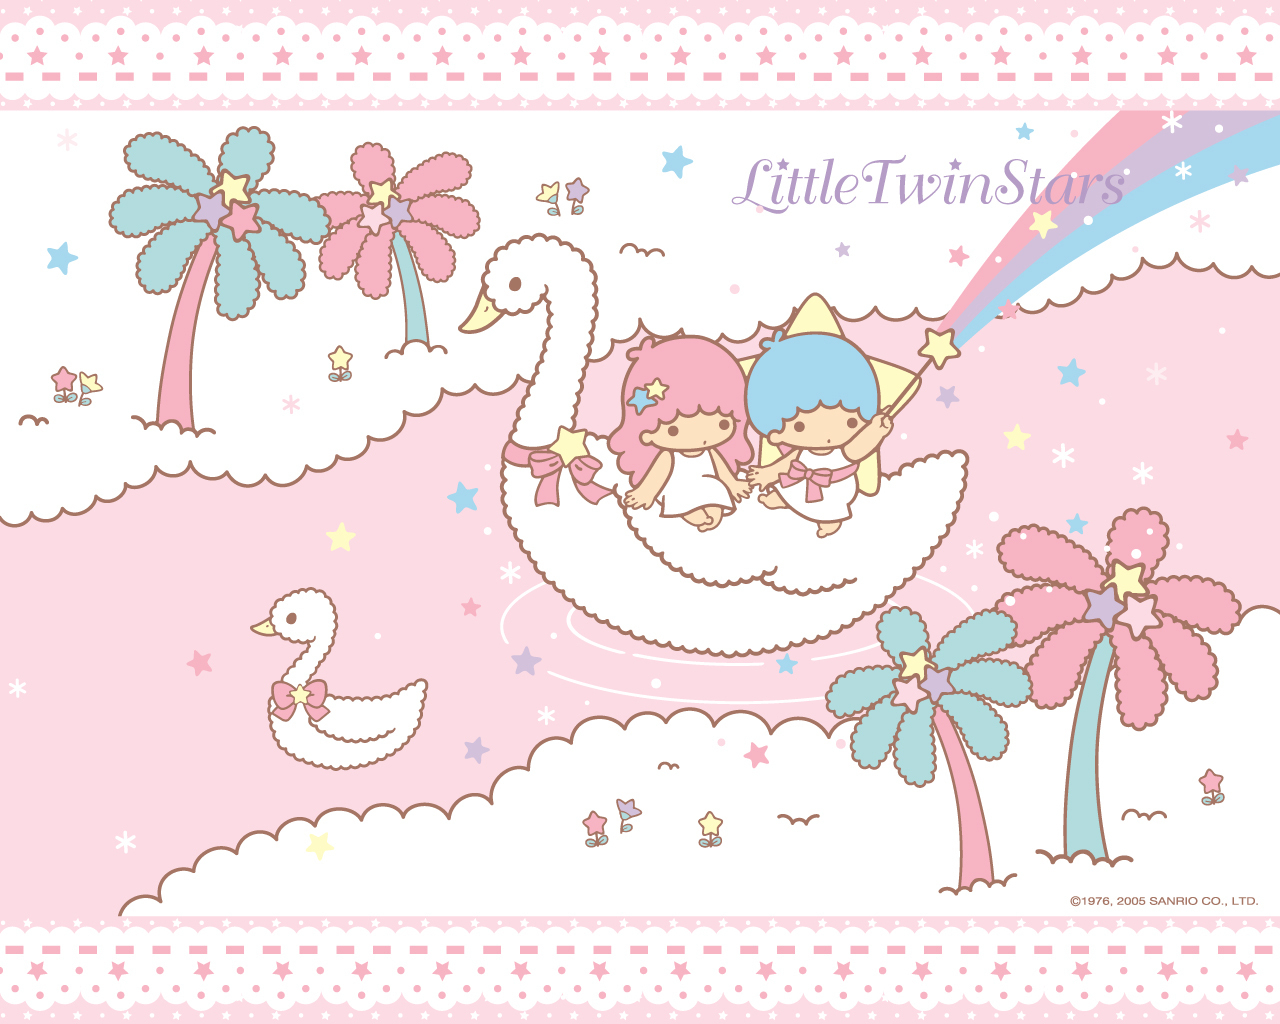 little twin stars images little twin stars hd wallpaper and